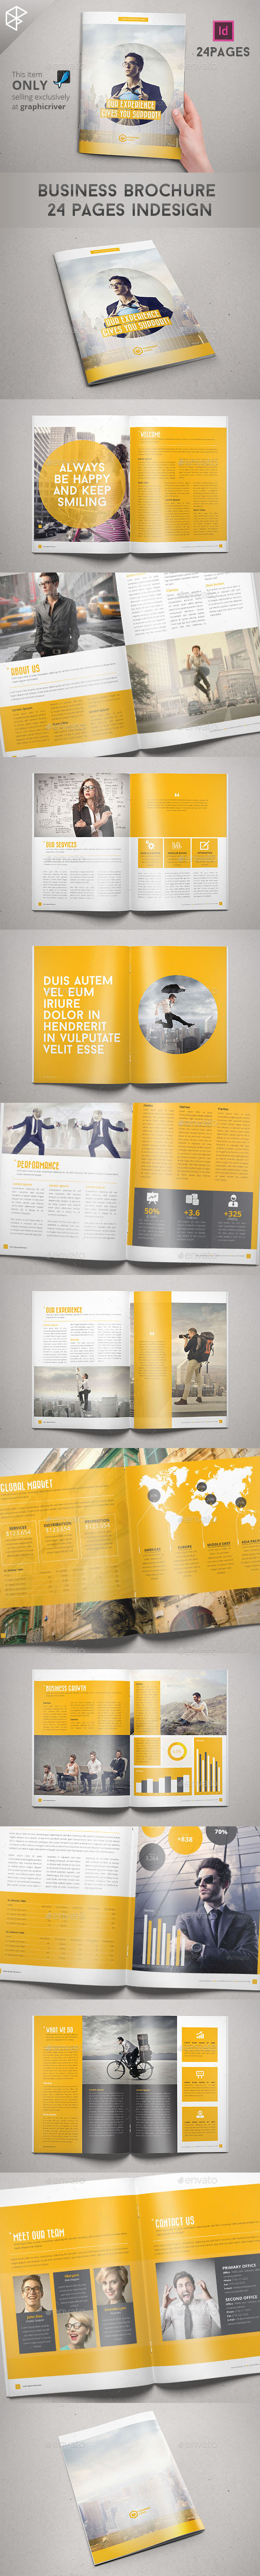 Business Brochure 24 Pages Indesign